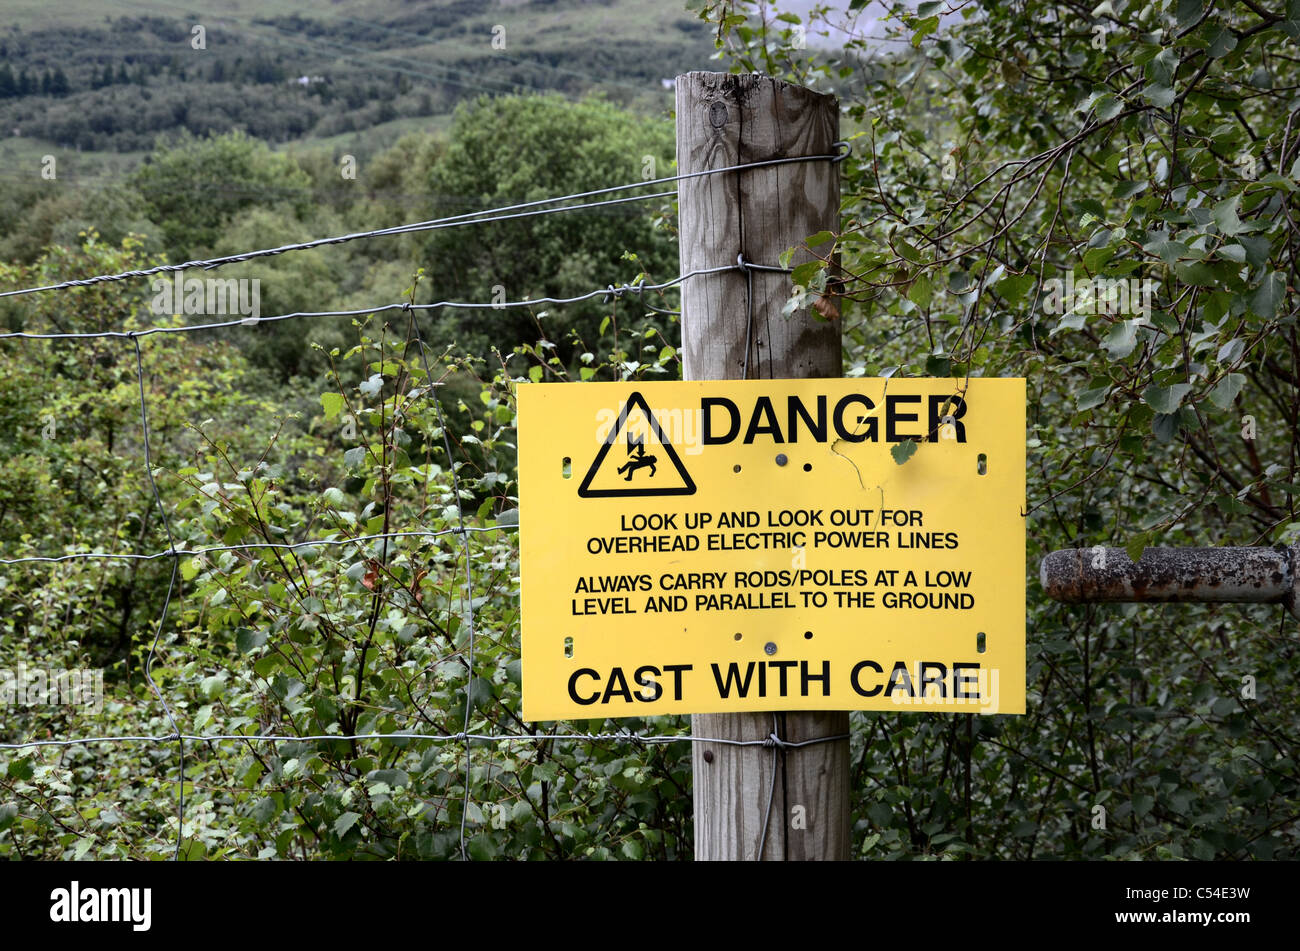 Warning sign for fishermen alerting them to the danger of overhead electric power lines near Kinlochleven. - Stock Image